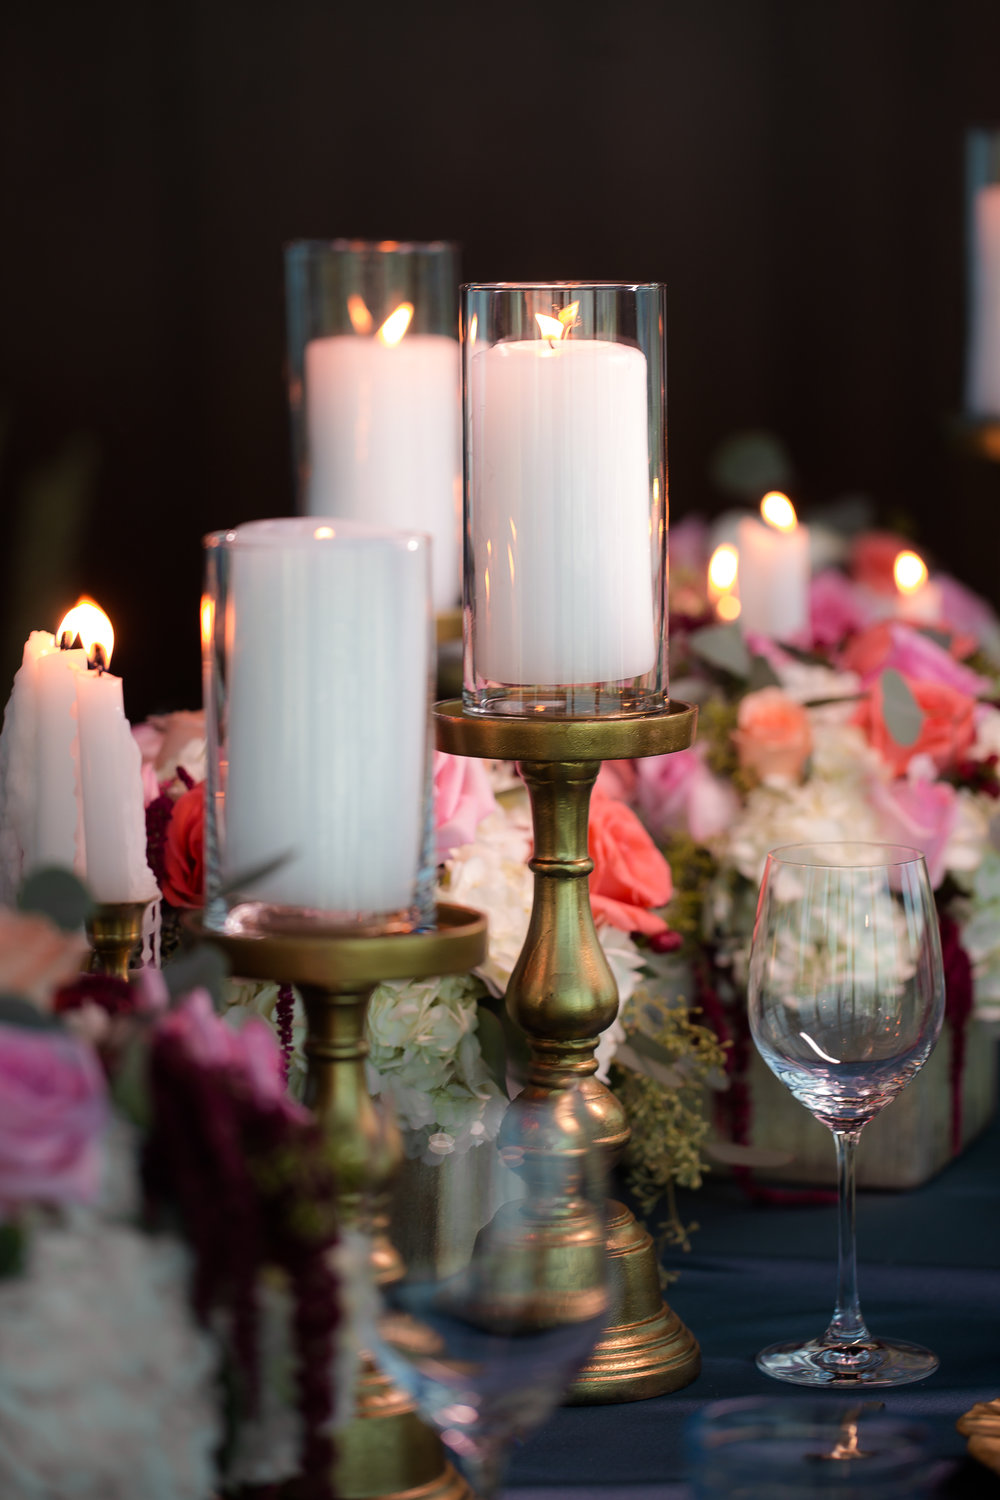 Tall pillar candle centgerpieces.     Styled Wedding Shoot inspired by French Blue.    Las Vegas Wedding Planner  Andrea Eppolito .  Photography by   Rebecca Marie  .  Floral and Decor by   By Dzign  .  Beauty by   Amelia C & Co  .  Shot at Rivea at The Delano.